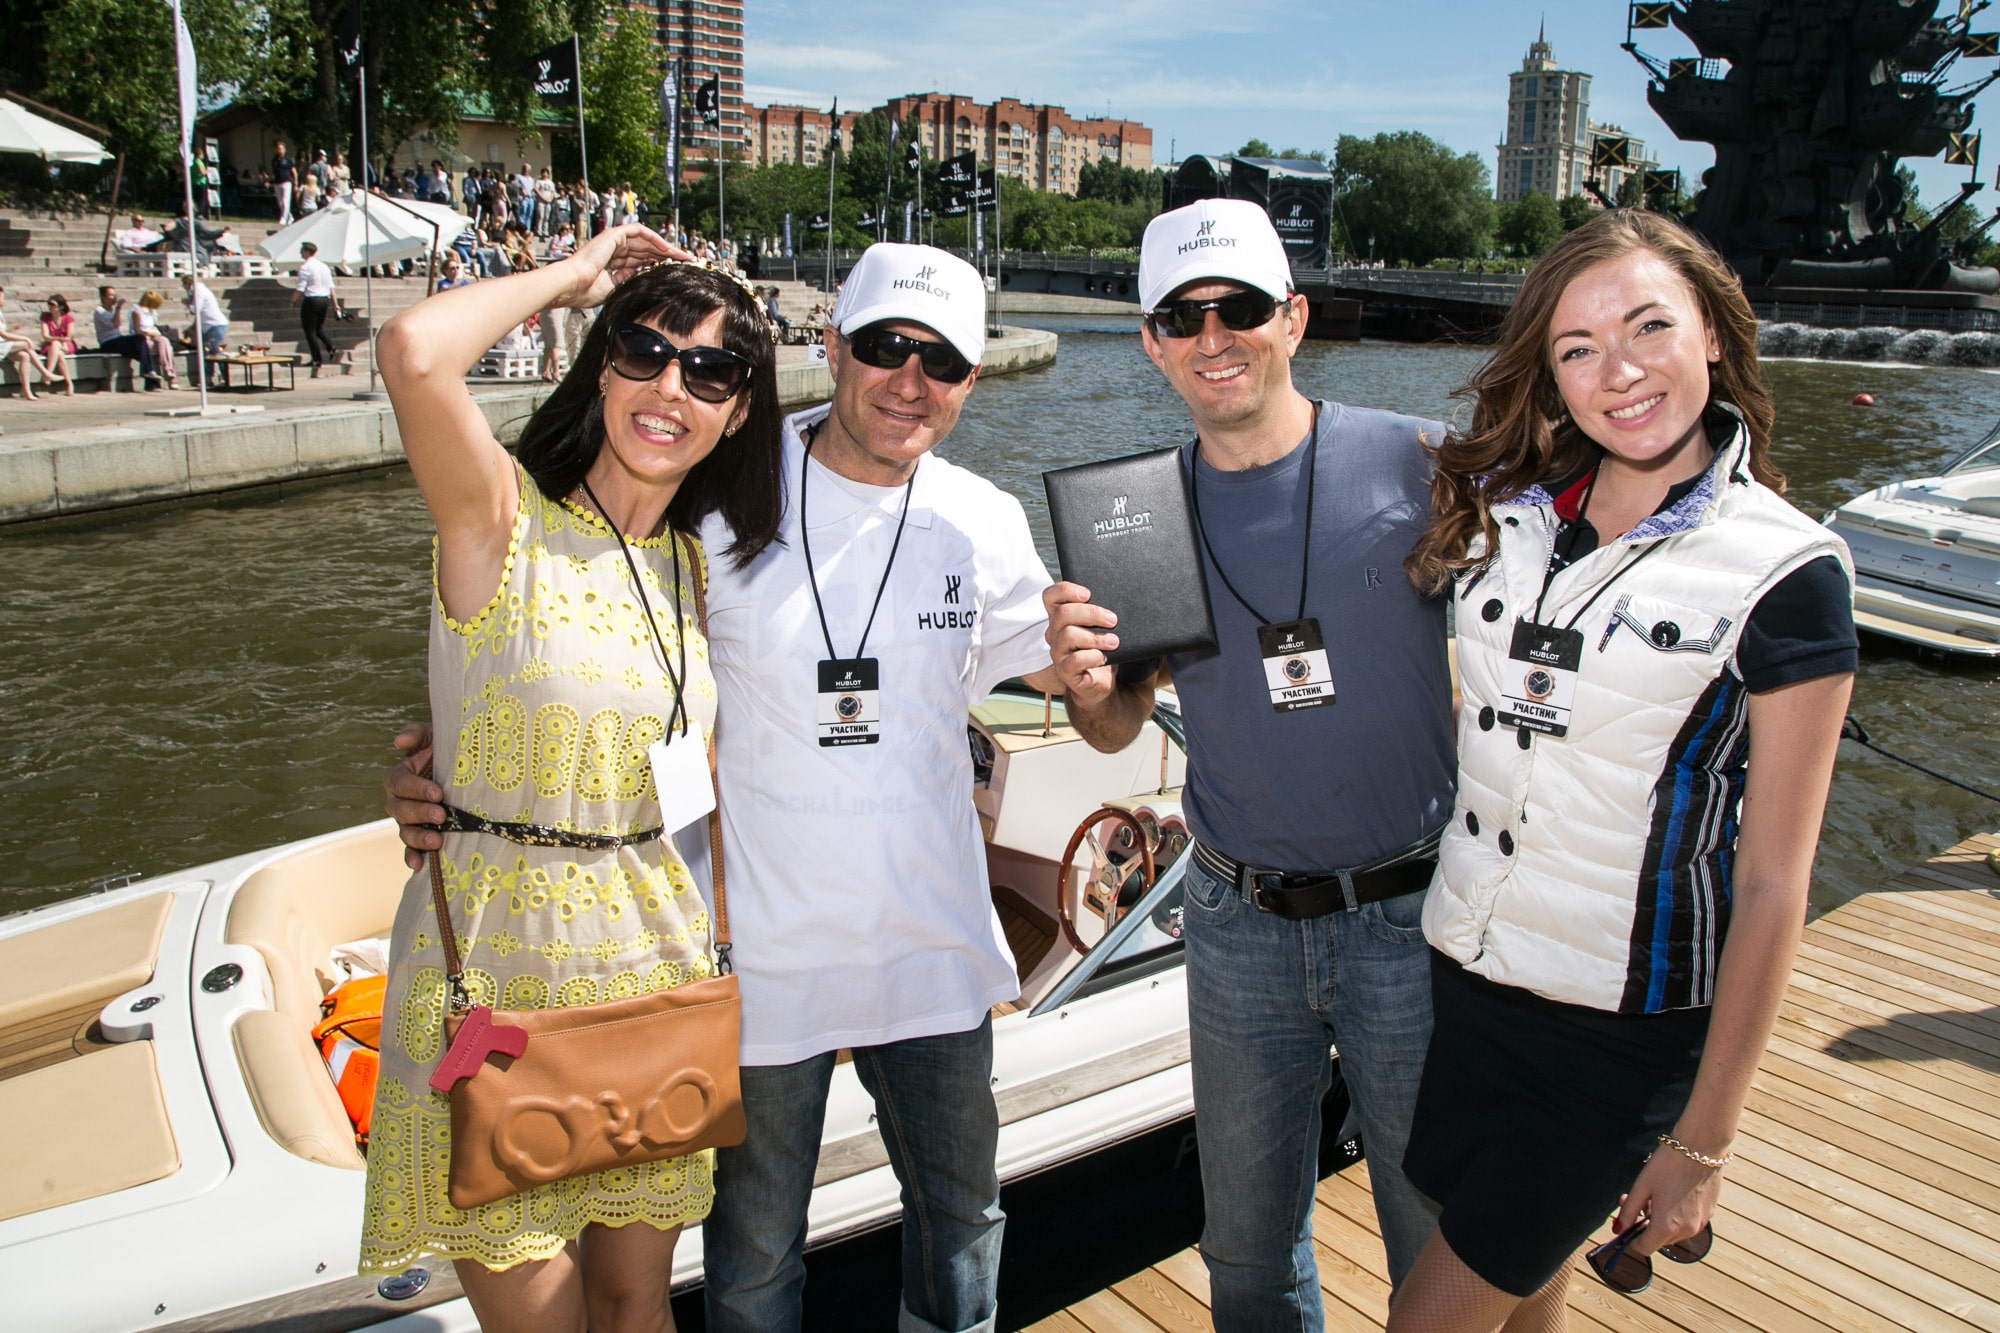 Hublot powerboat 2015 Moscow - The Winners